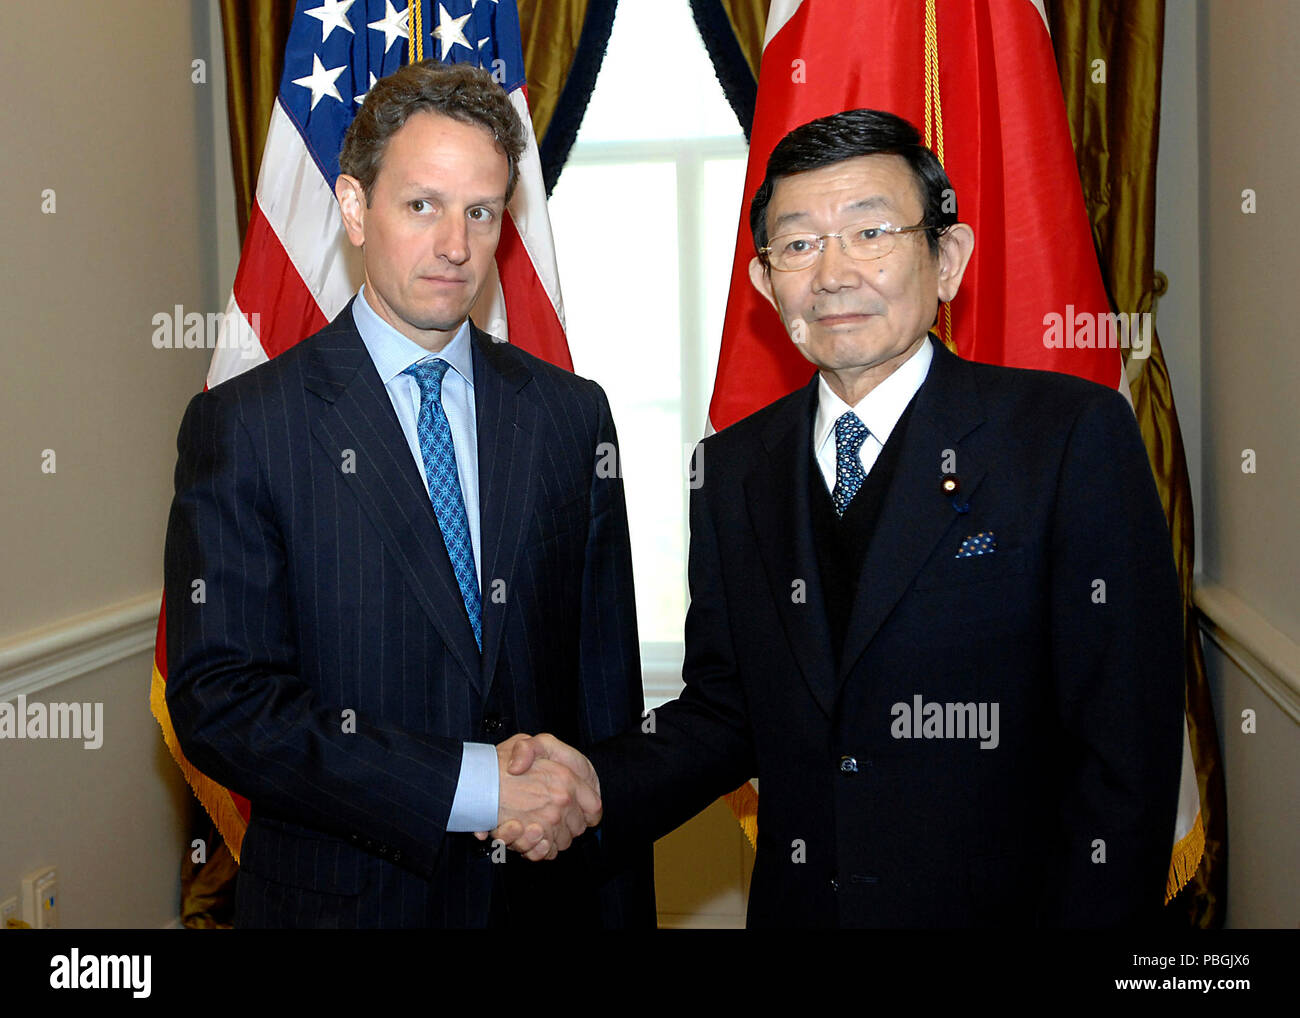 On April 24, 2009, Secretary Geithner conducted a bilateral meeting at Treasury with Japanese Finance Minister Yosano. - Stock Image